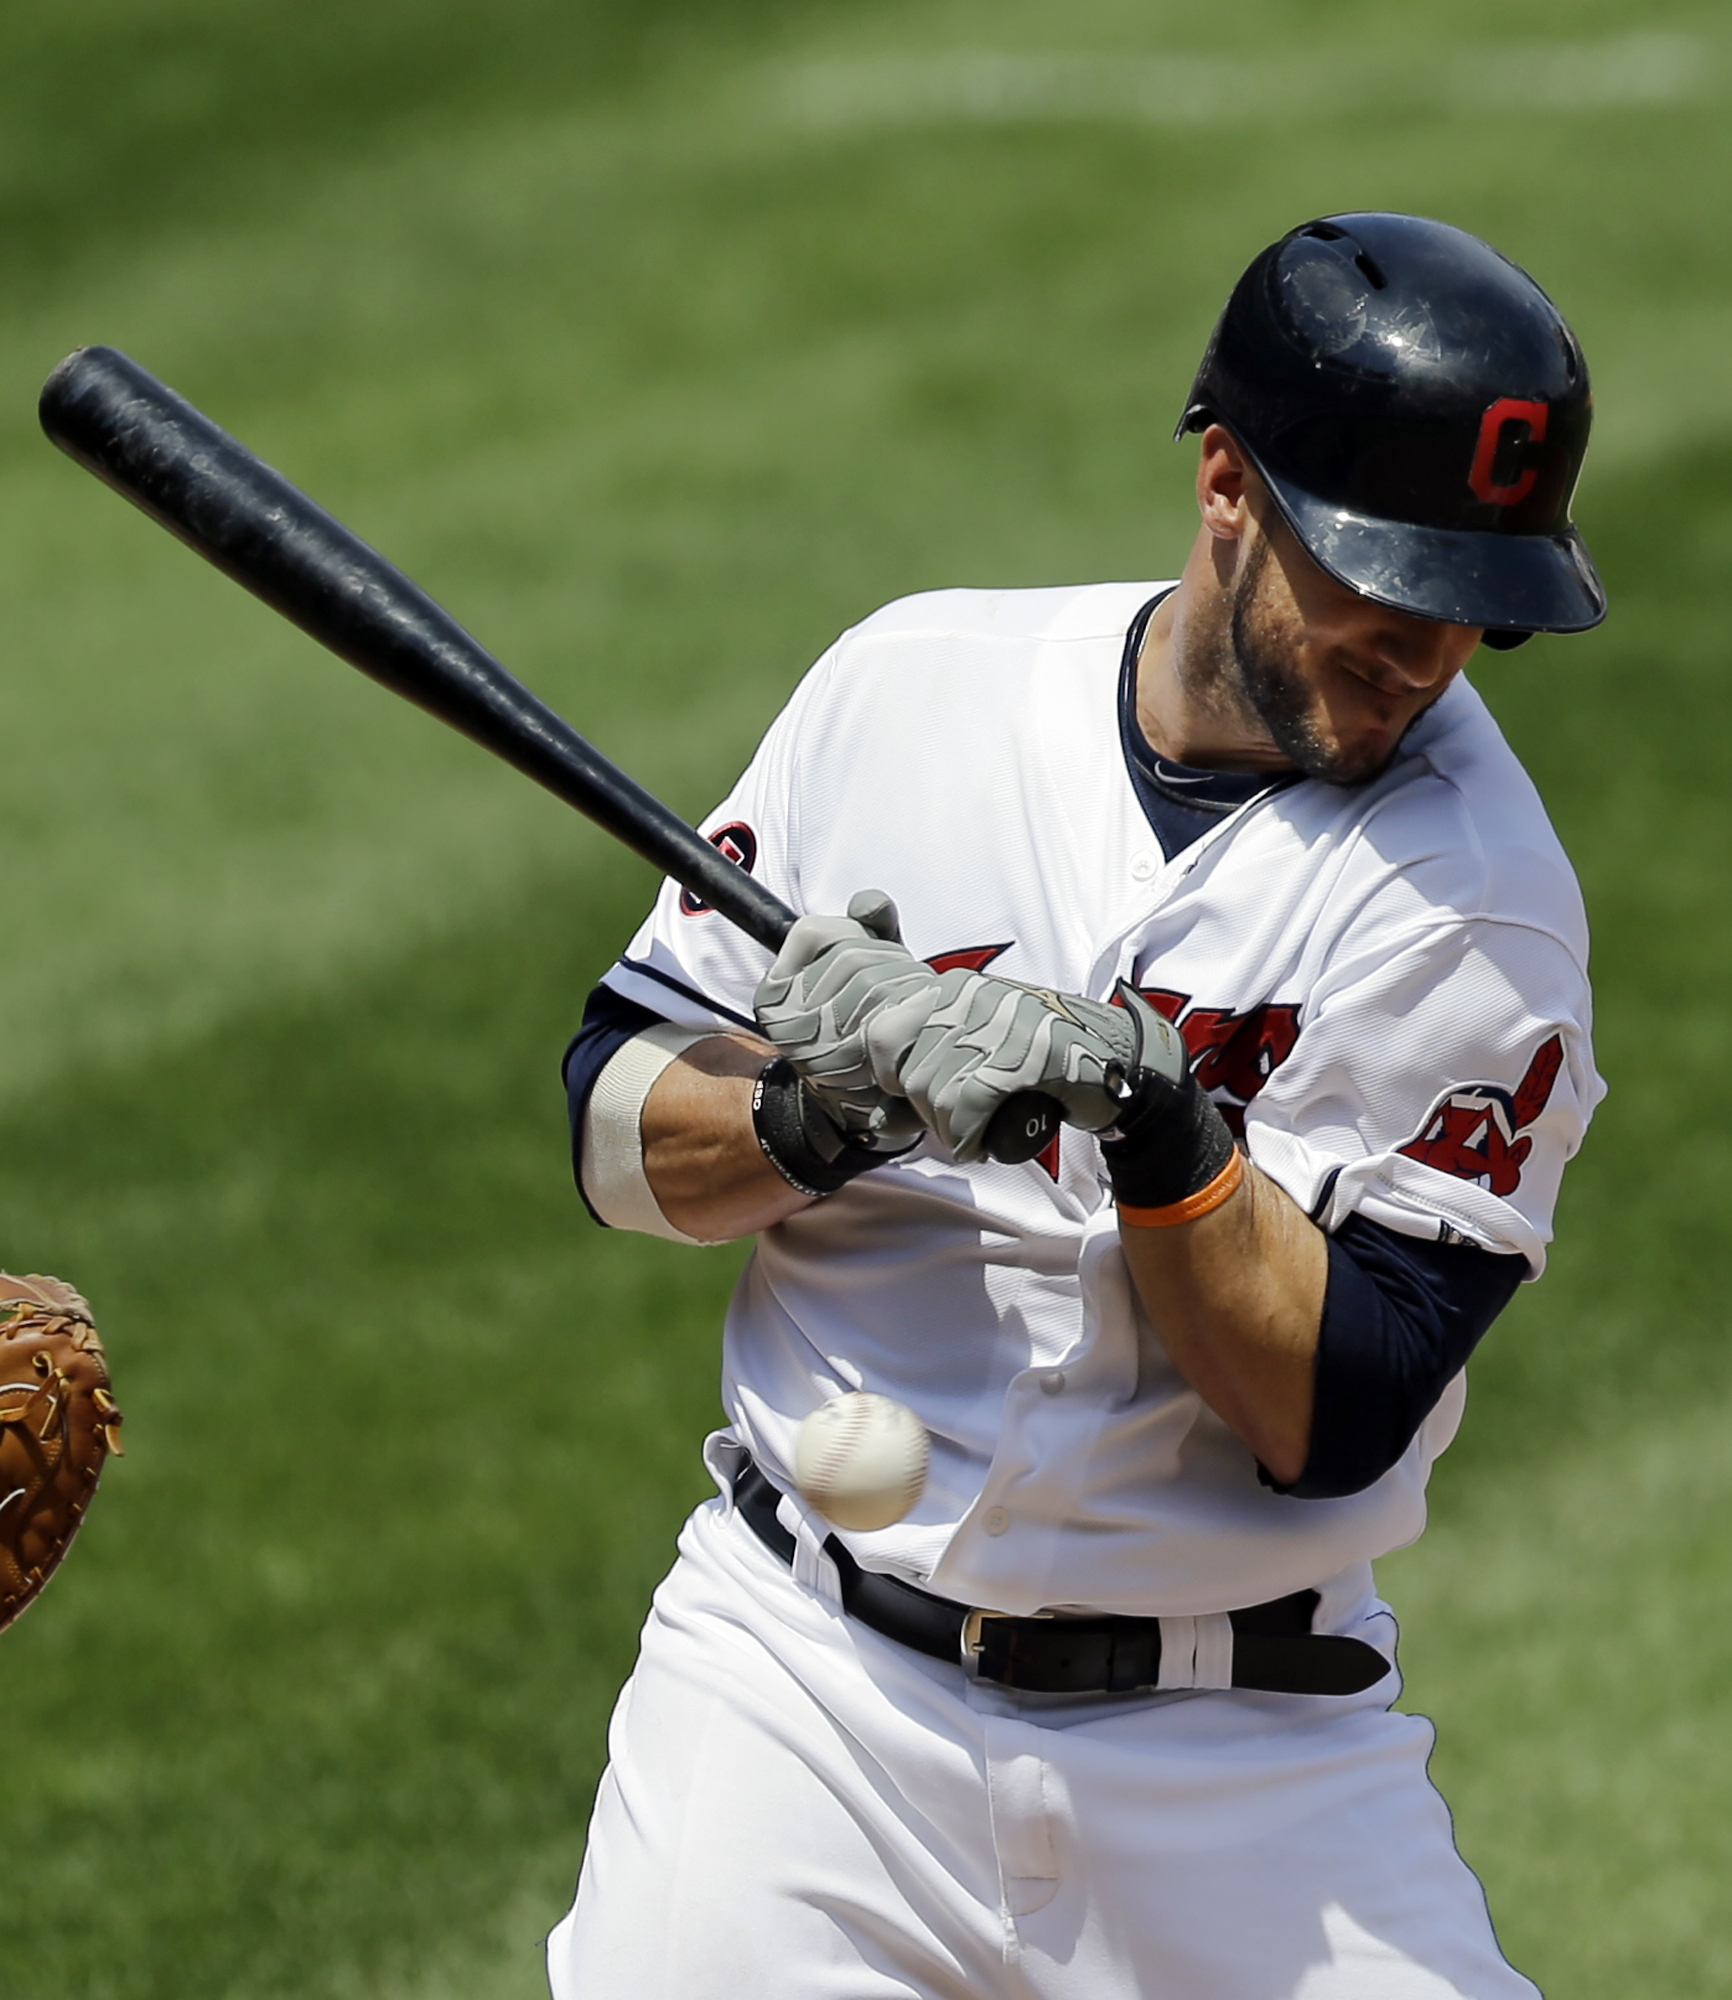 Cleveland Indians' Yan Gomes is hit by a pitch from Kansas City Royals starting pitcher Jeremy Guthrie in the first inning of a baseball game, Wednesday, July 29, 2015, in Cleveland. Jason Kipnis scored on the play. (AP Photo/Tony Dejak)